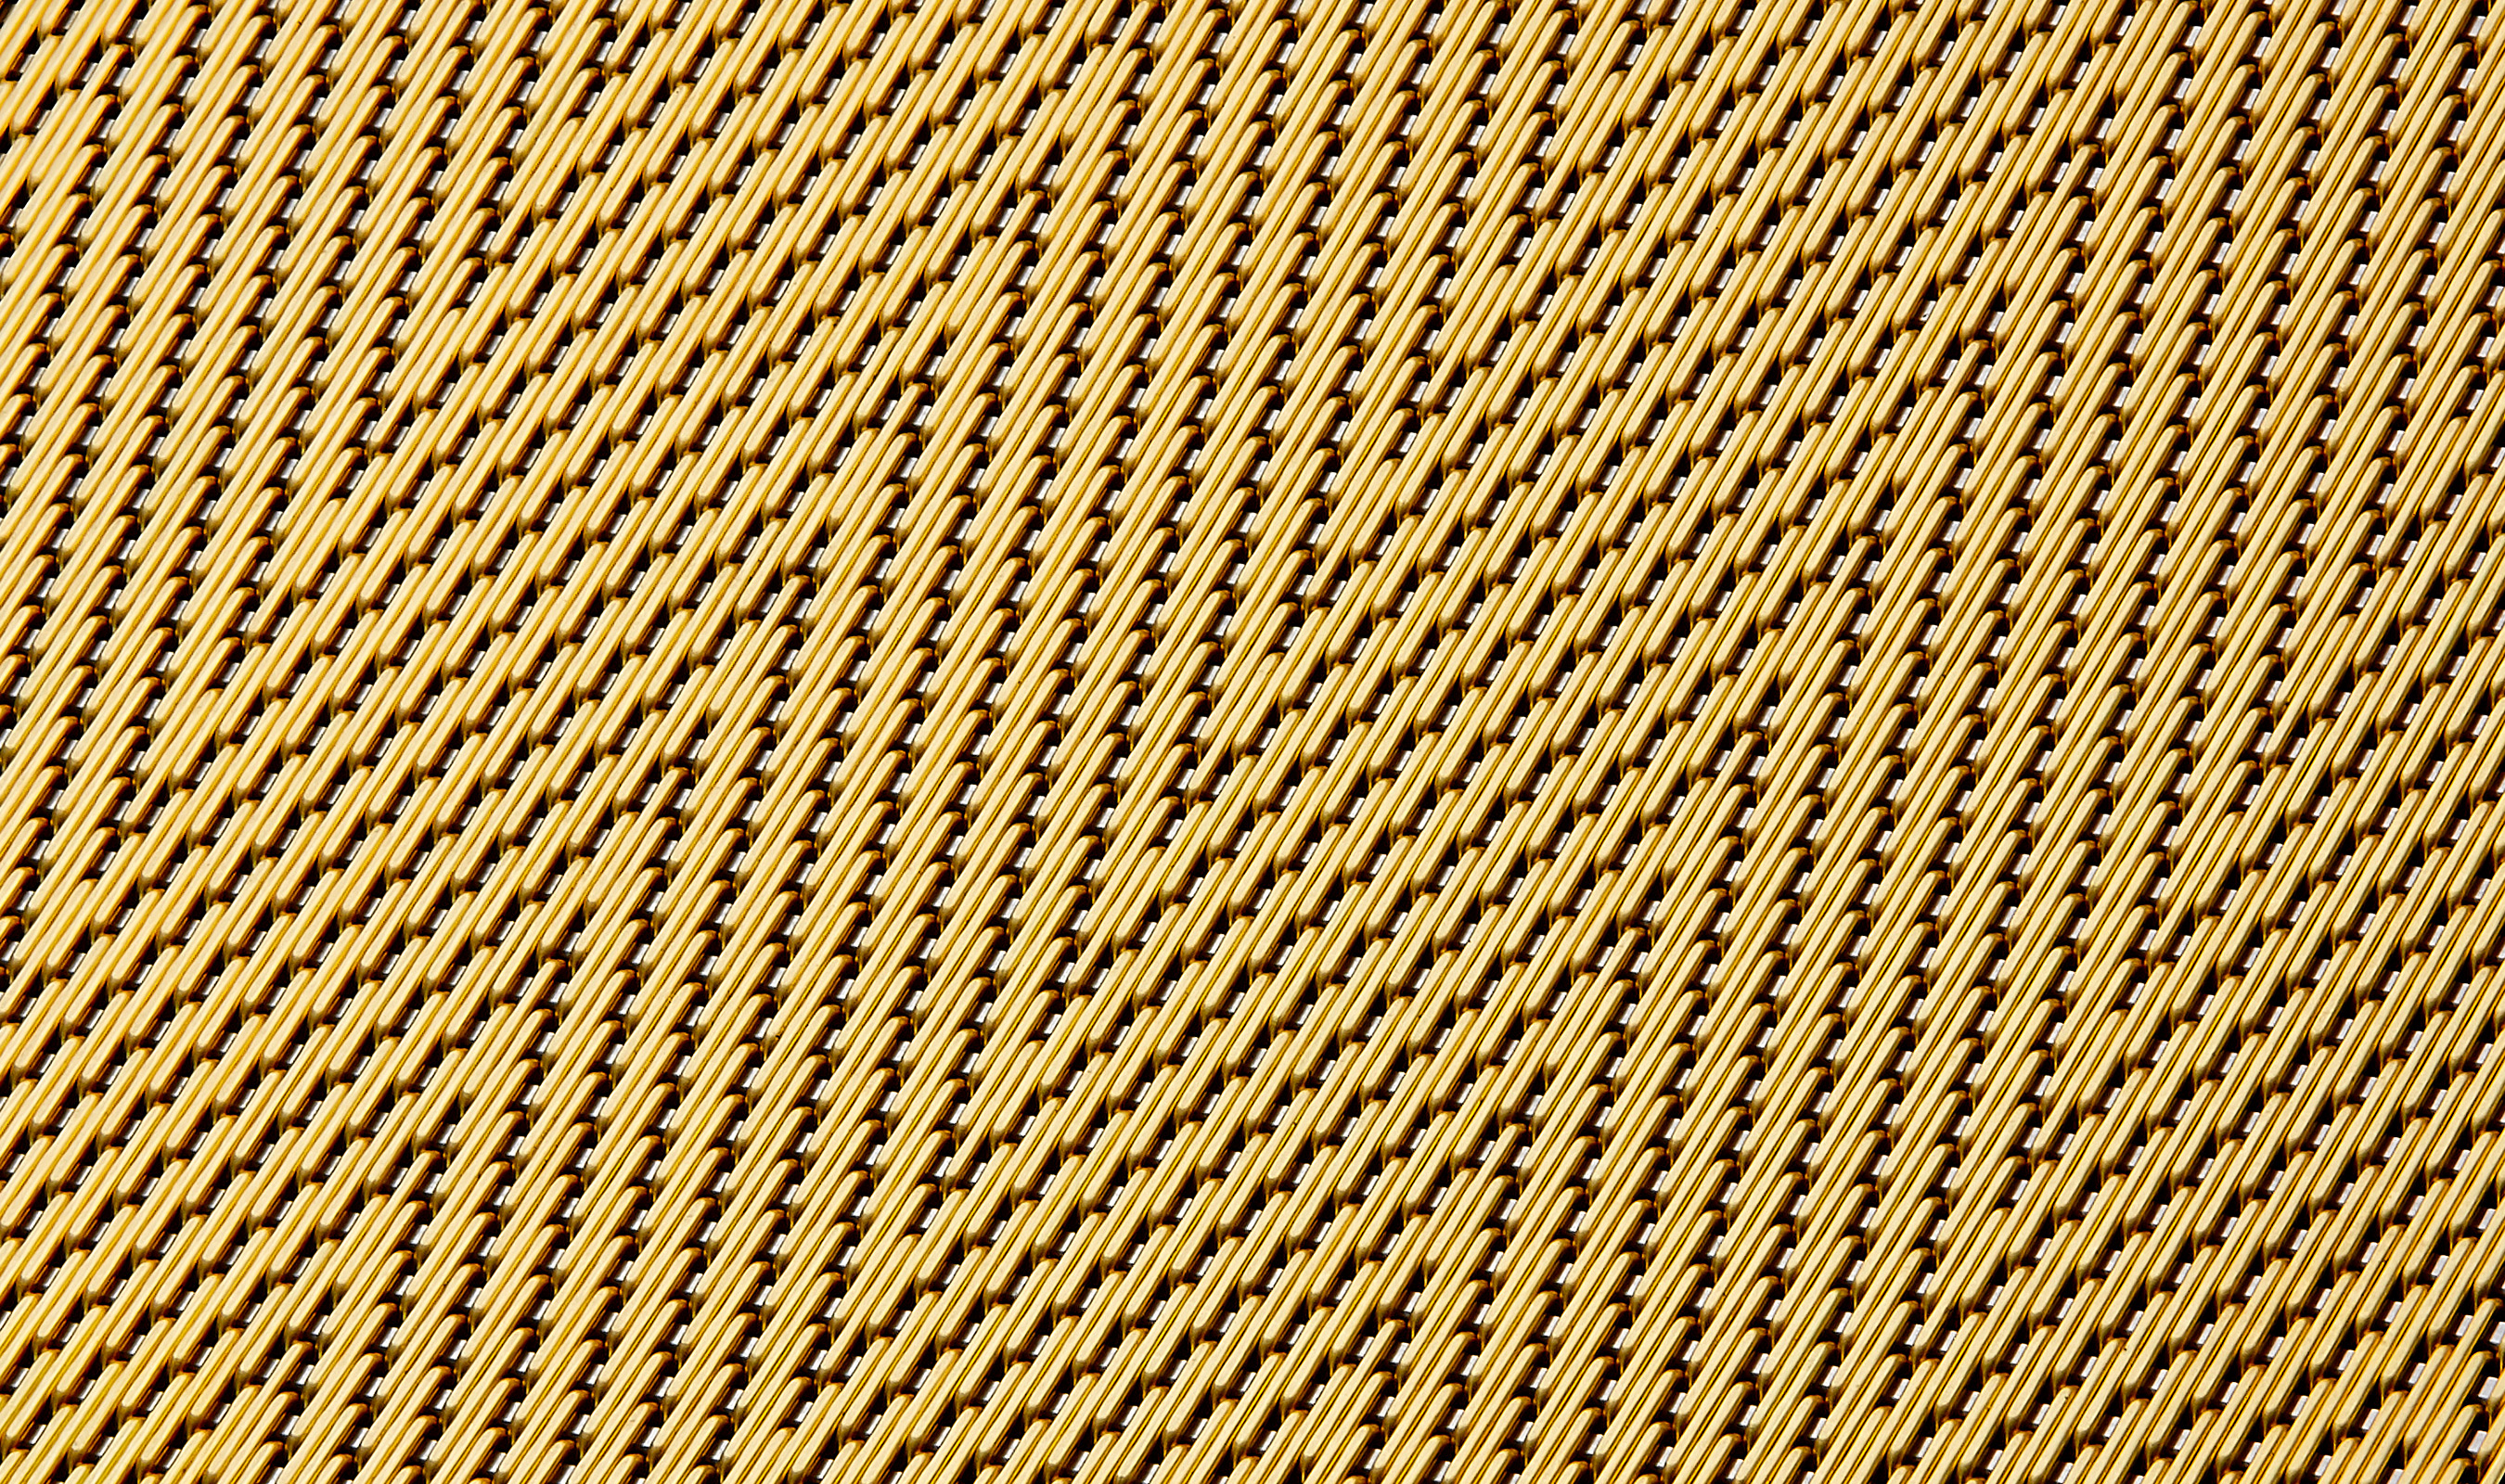 DT-1 decorative metal mesh woven in a Stainless Steel and Brass combination